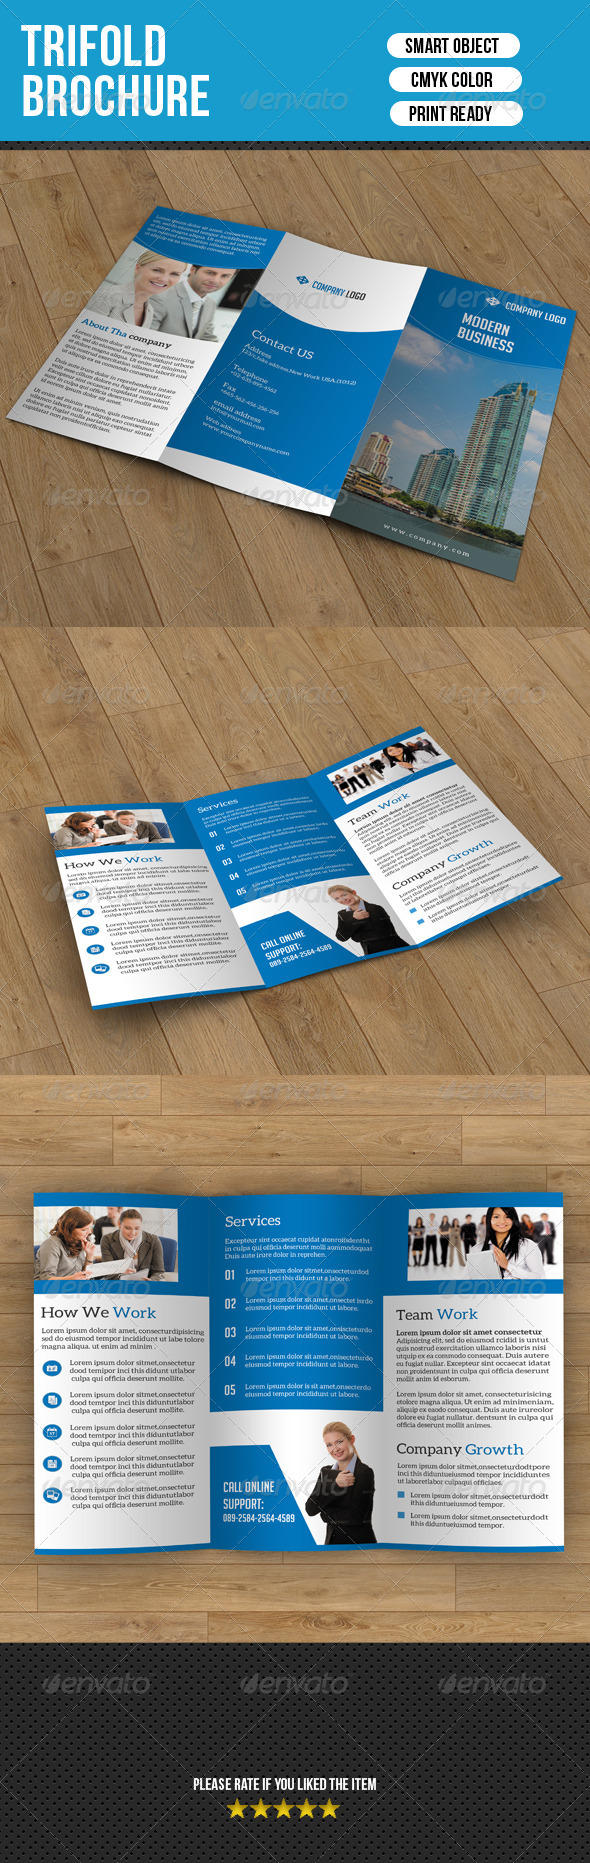 GraphicRiver Trifold Brochure-Business 7361898